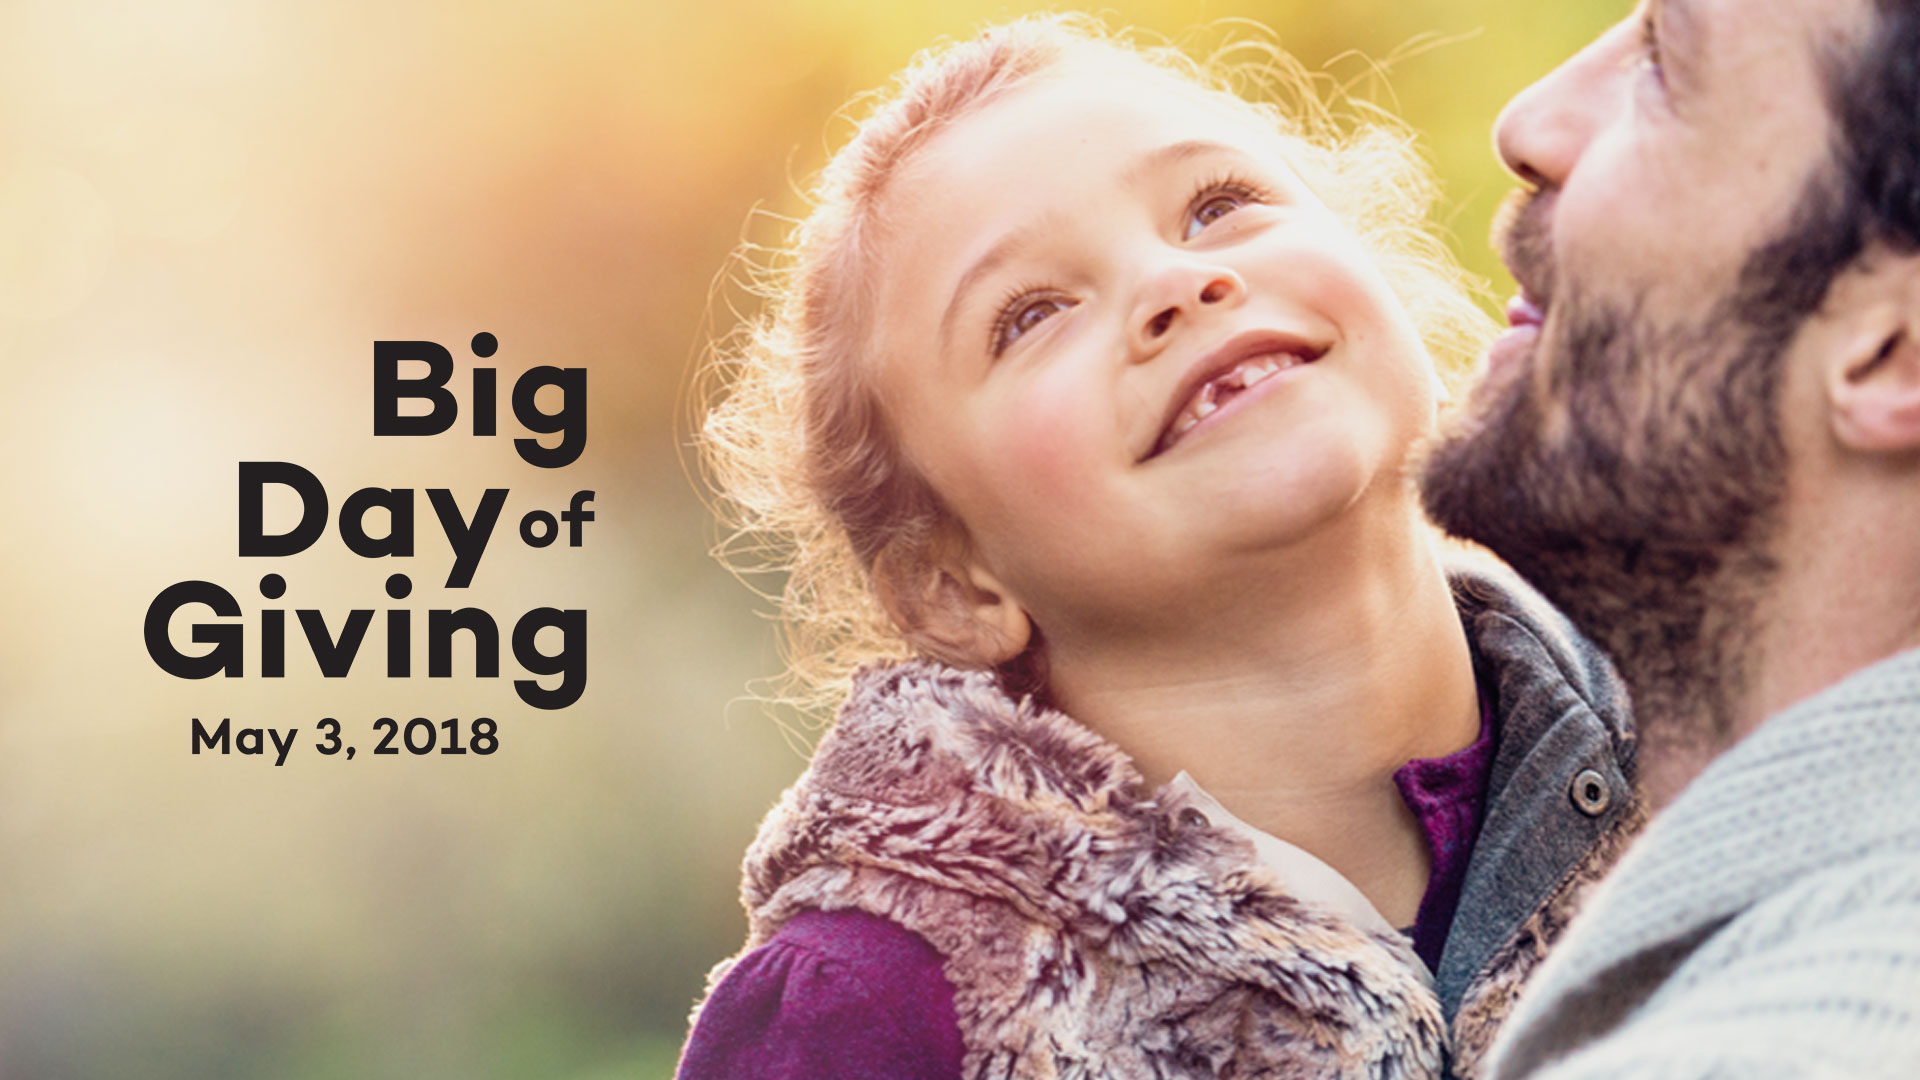 Help our community on Big Day of Giving